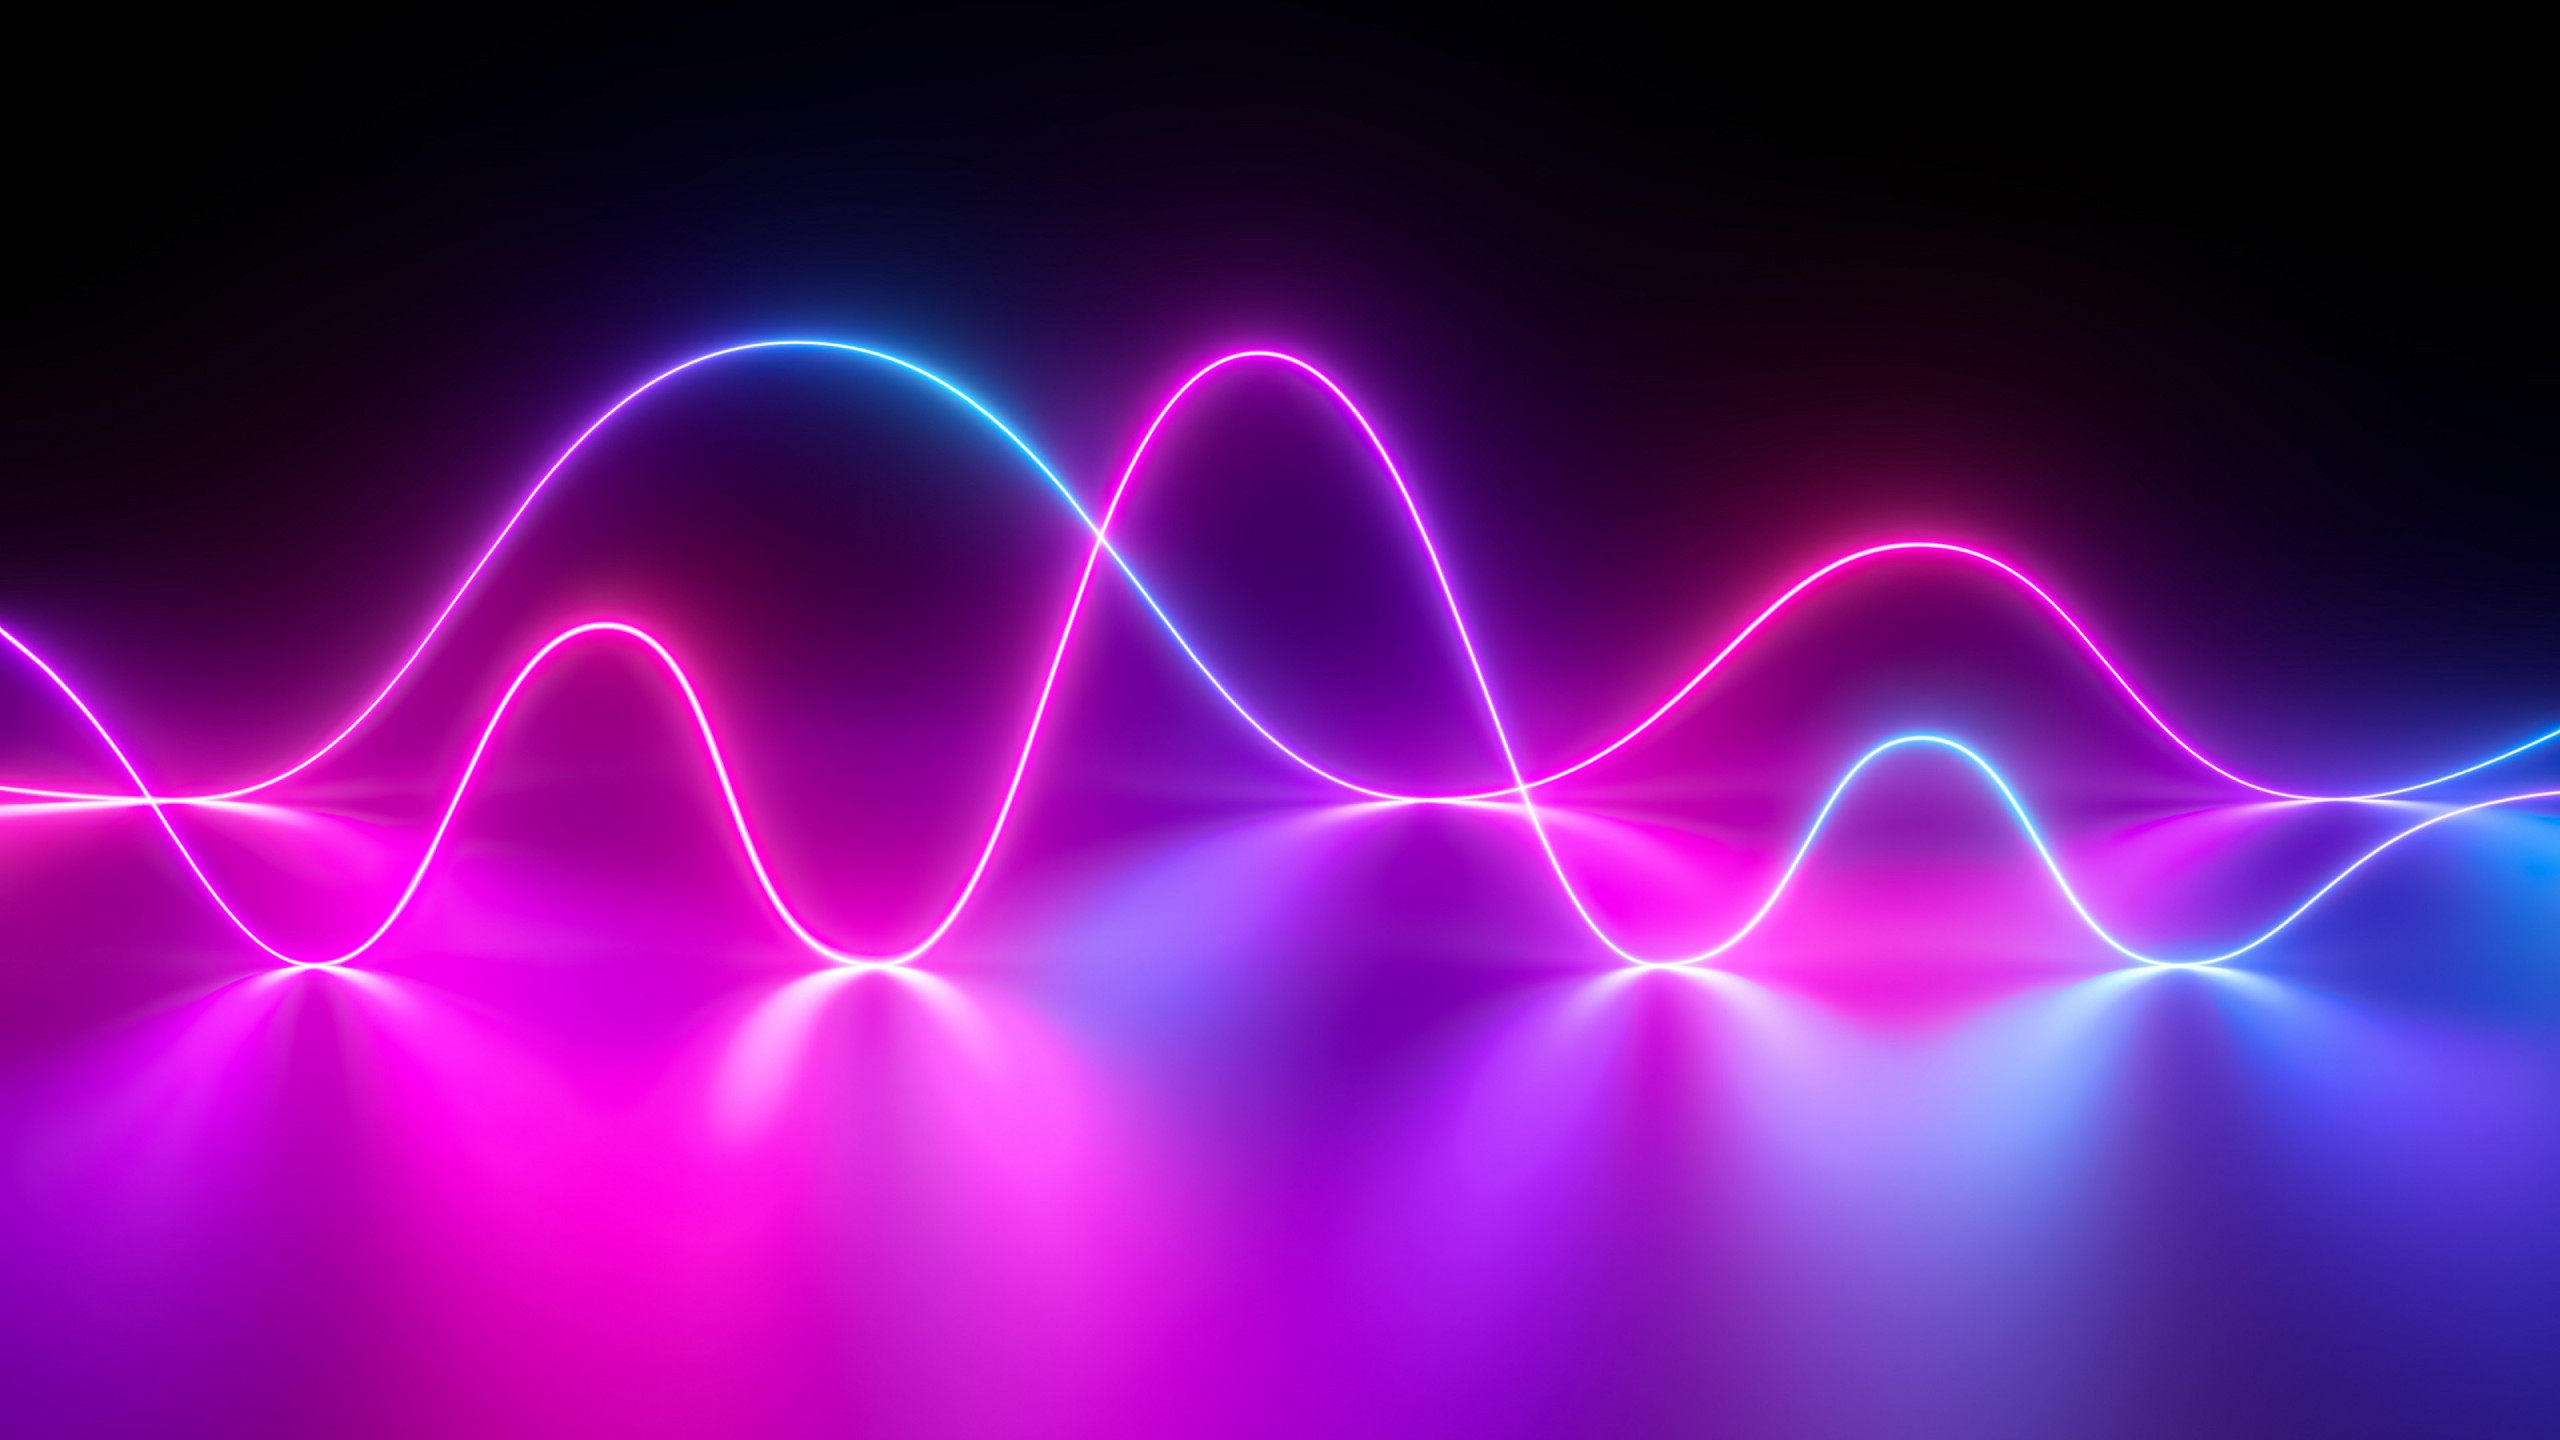 Download wallpaper oscilloscope from huawei mediapad m6 2560x1440 - Background images 4k hd ...